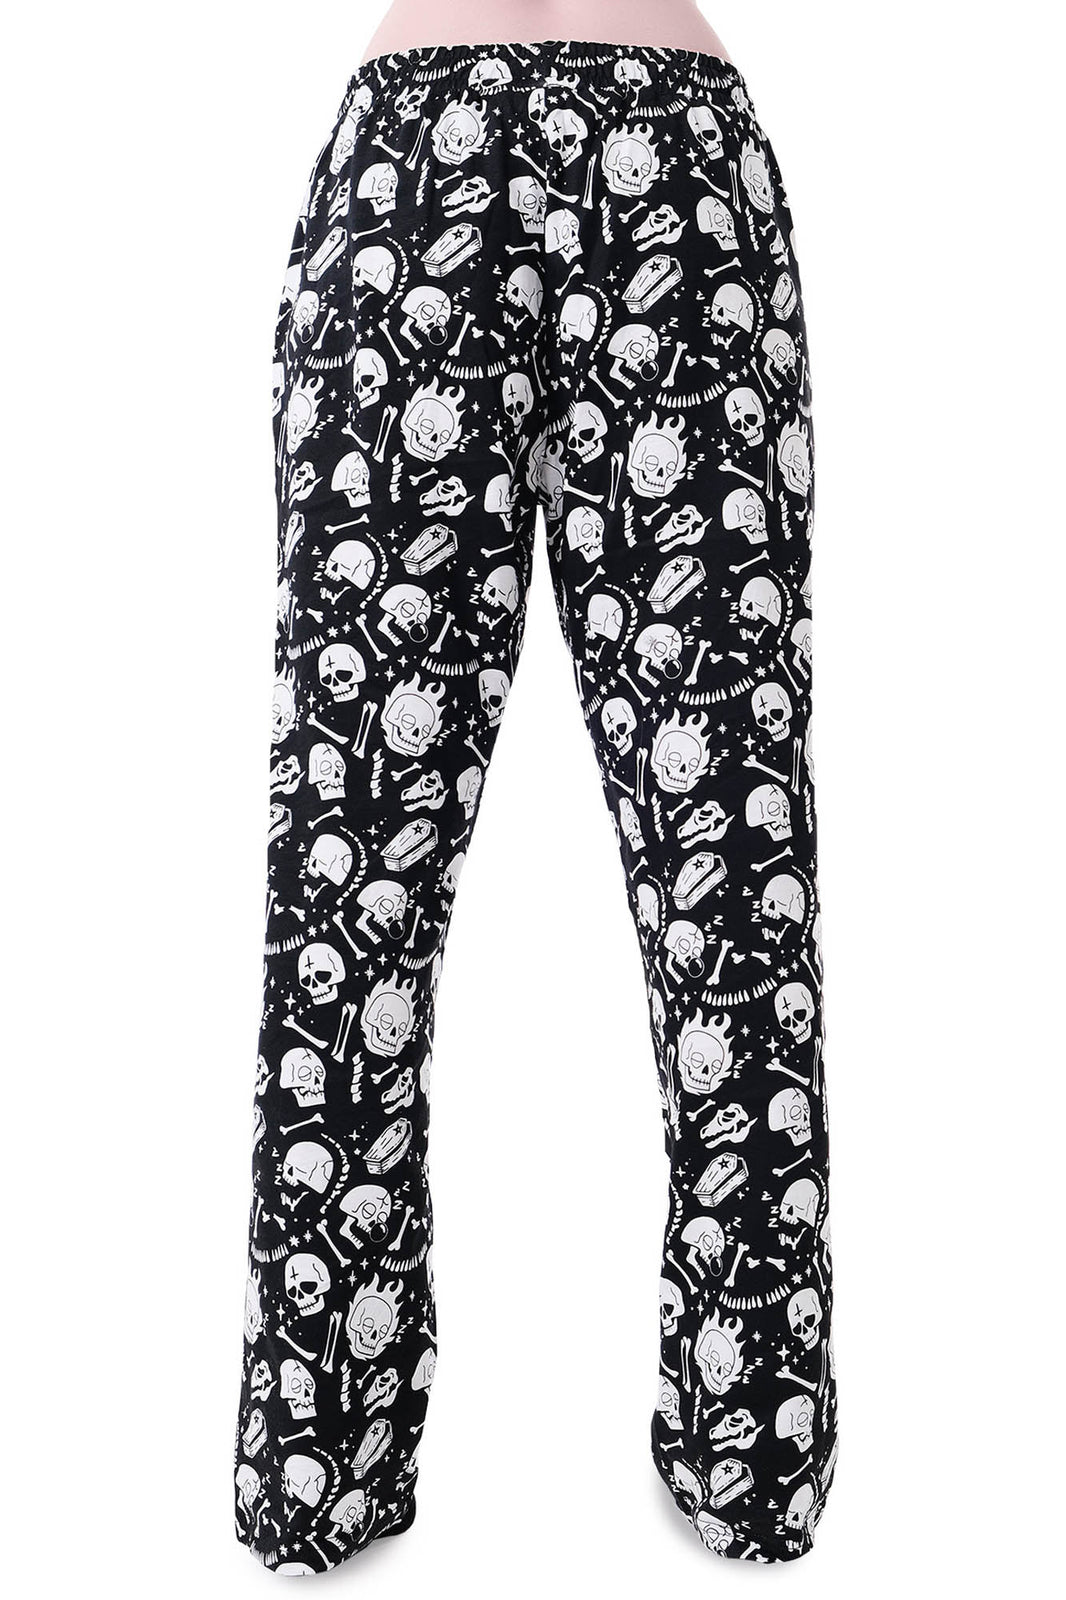 Snooze Spirit PJ Bottoms